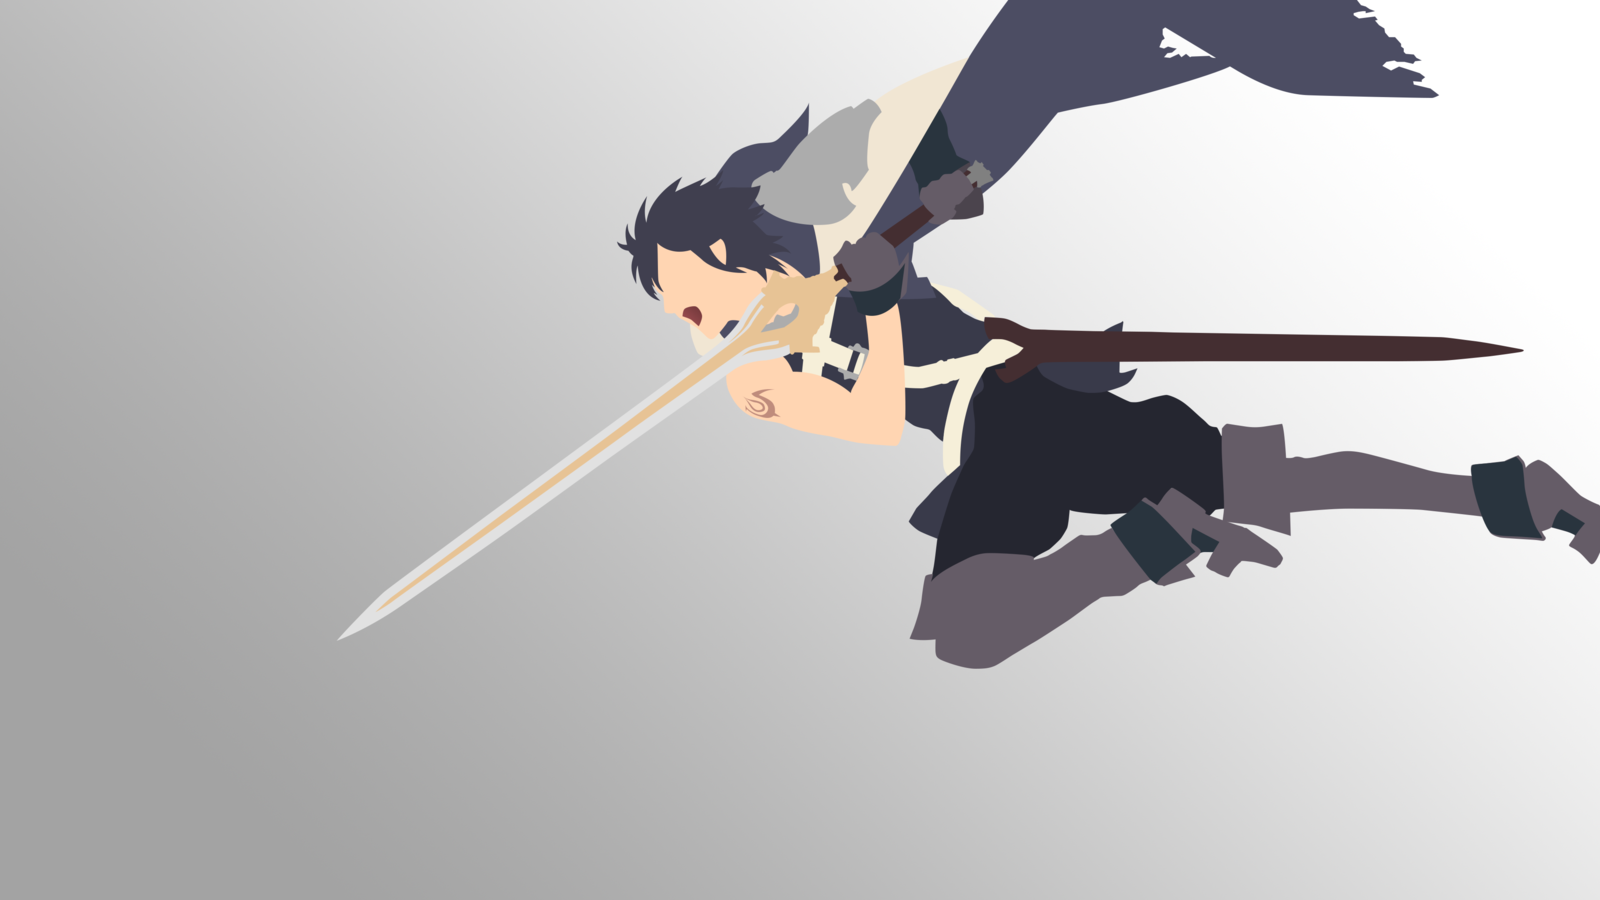 chrom minimalist wallpaper 4k by nicolasnsane customization wallpaper 1600x900